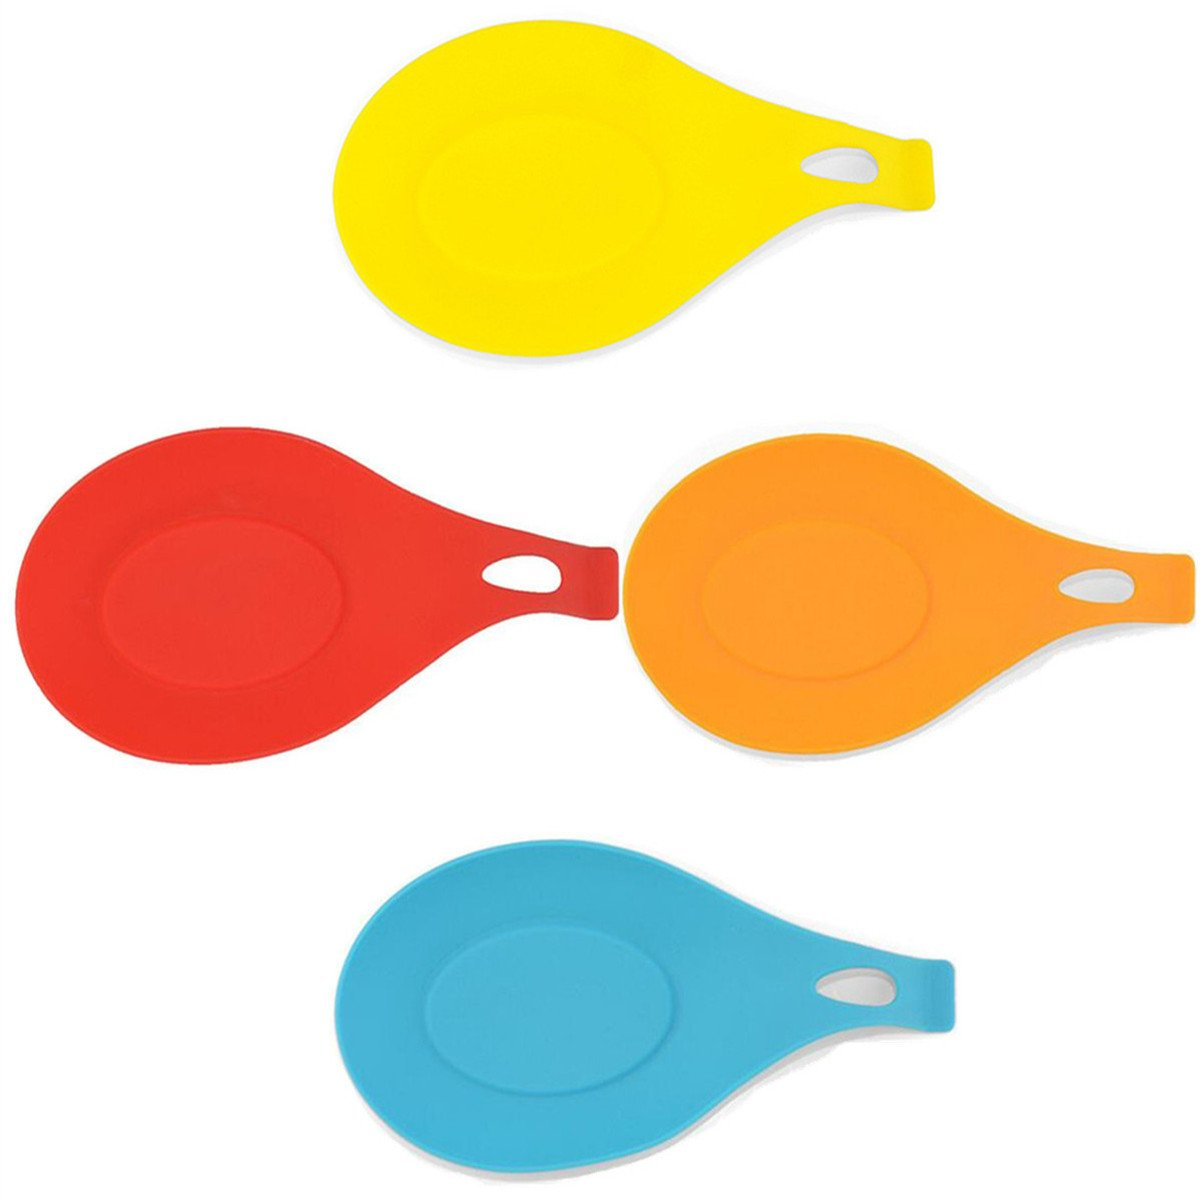 4 pcs/set Kitchen Heat Resistant Silicone Spoon Rest Utensil Spatula Holder Kitchen Tool set of 4 huaminxiangyue 4335499361